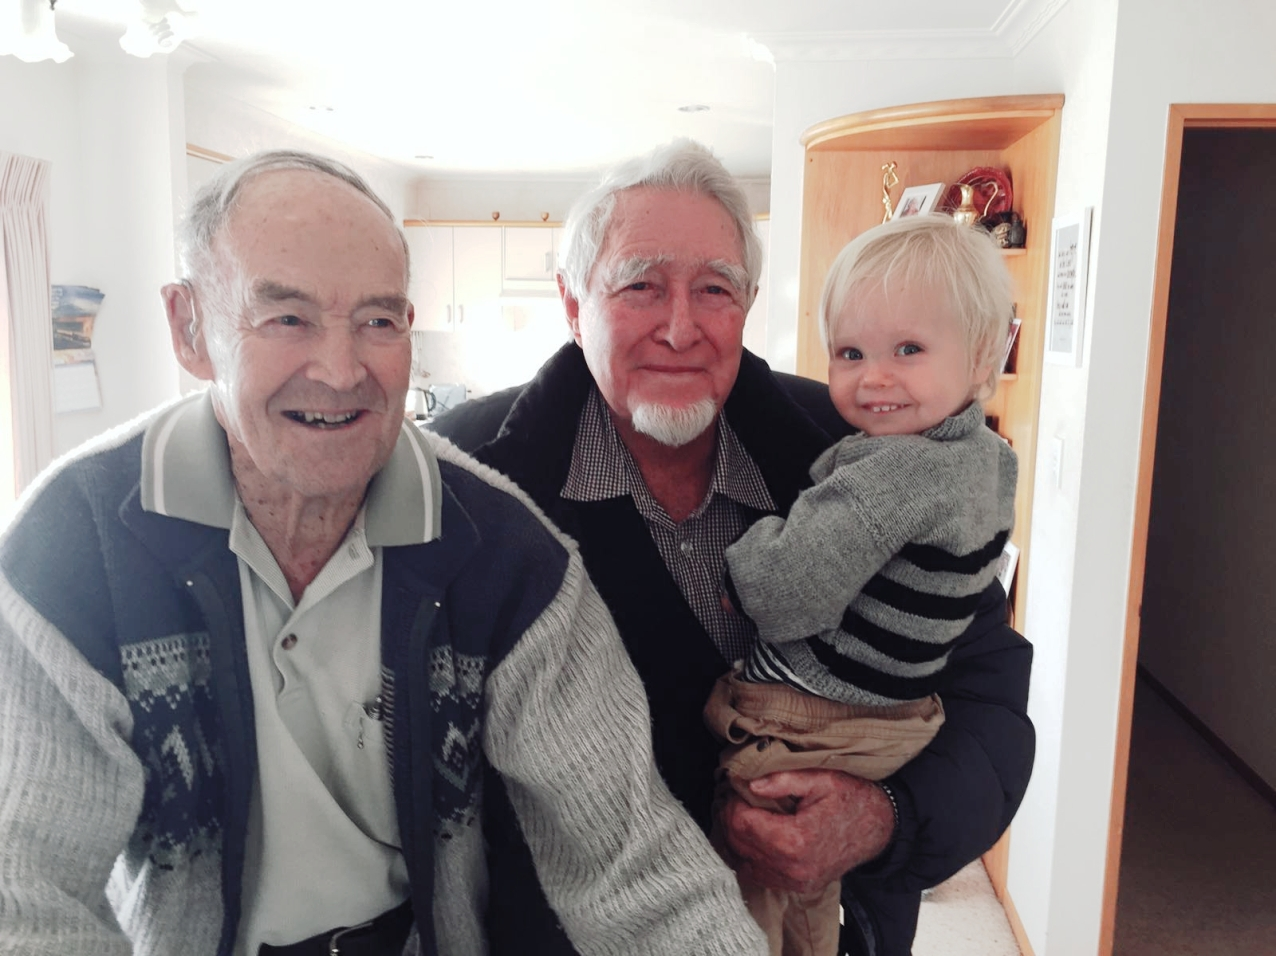 Kepler Jacob Roy with his great-grandfathers, Roy Suisted and Jacob Jackson.